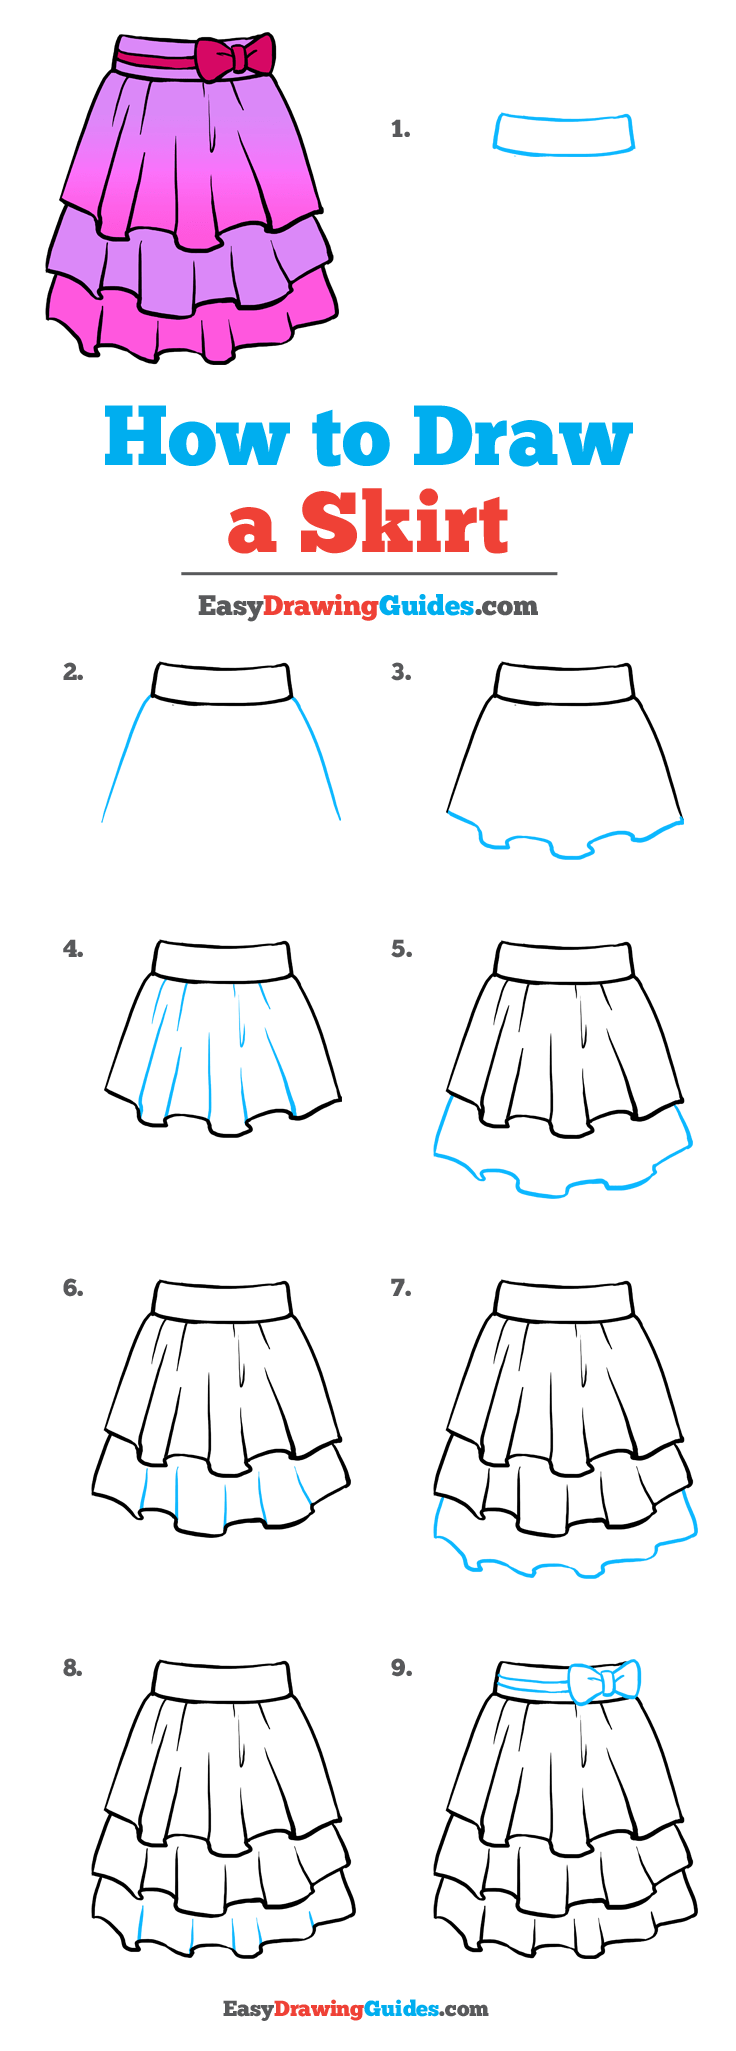 How to Draw a Skirt Step by Step Tutorial Image